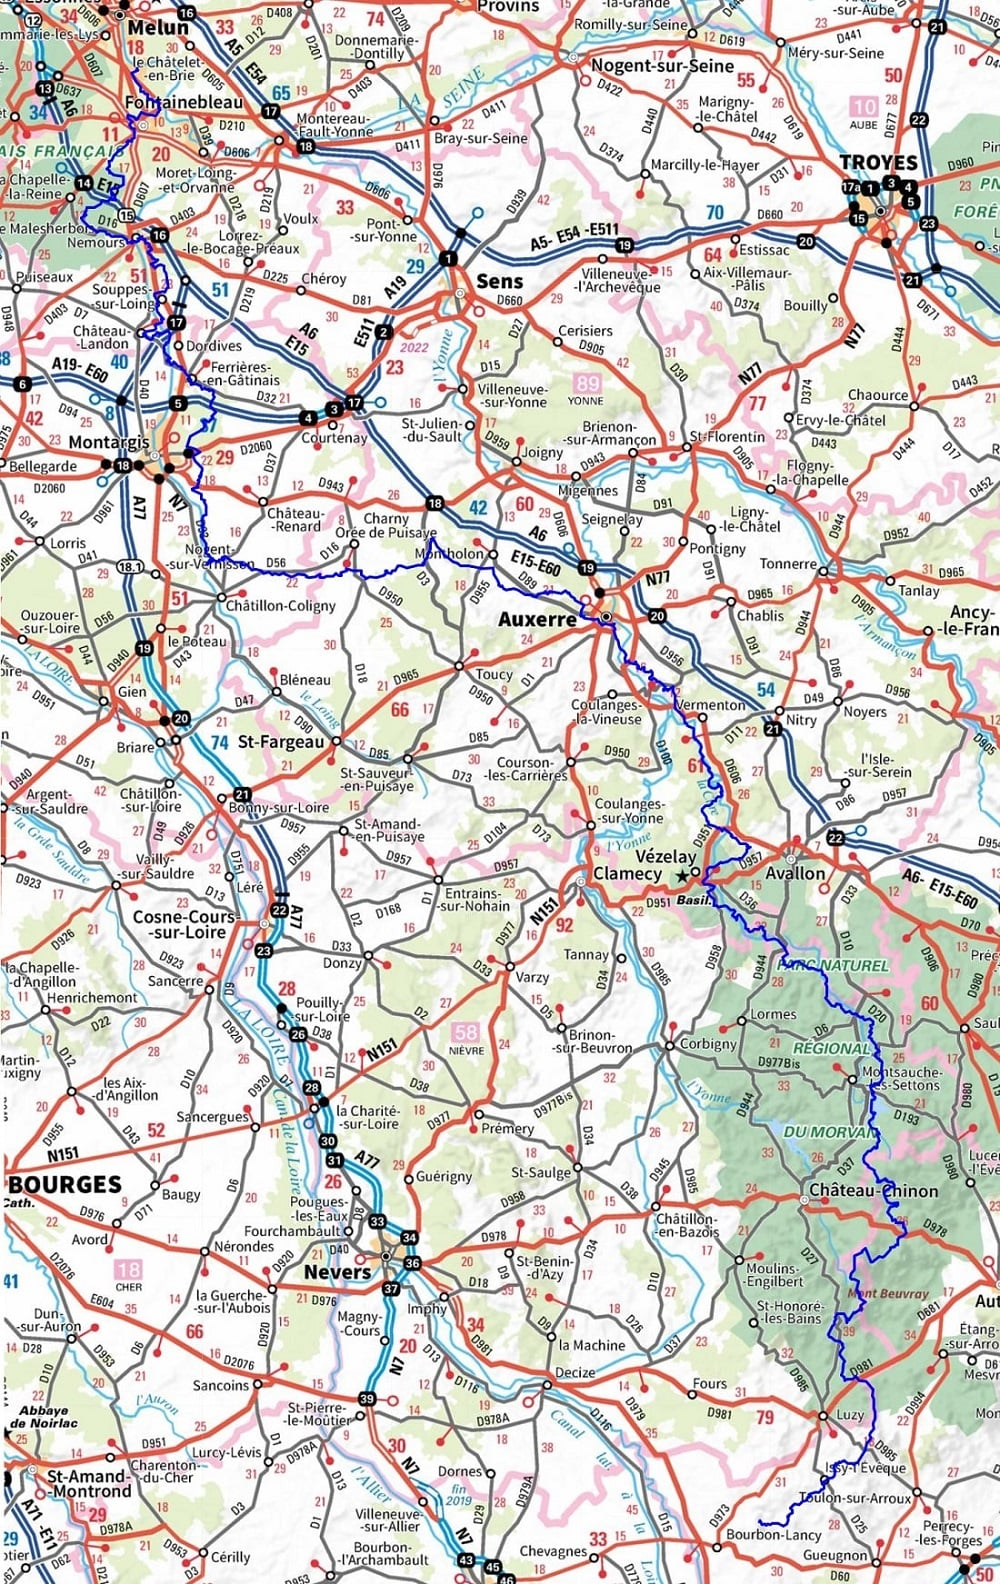 GR13 Hiking from Fontainebleau (Seine-et-Marne) to Signal-de-Mont (Saone-et-Loire) (Full itinerary) 1